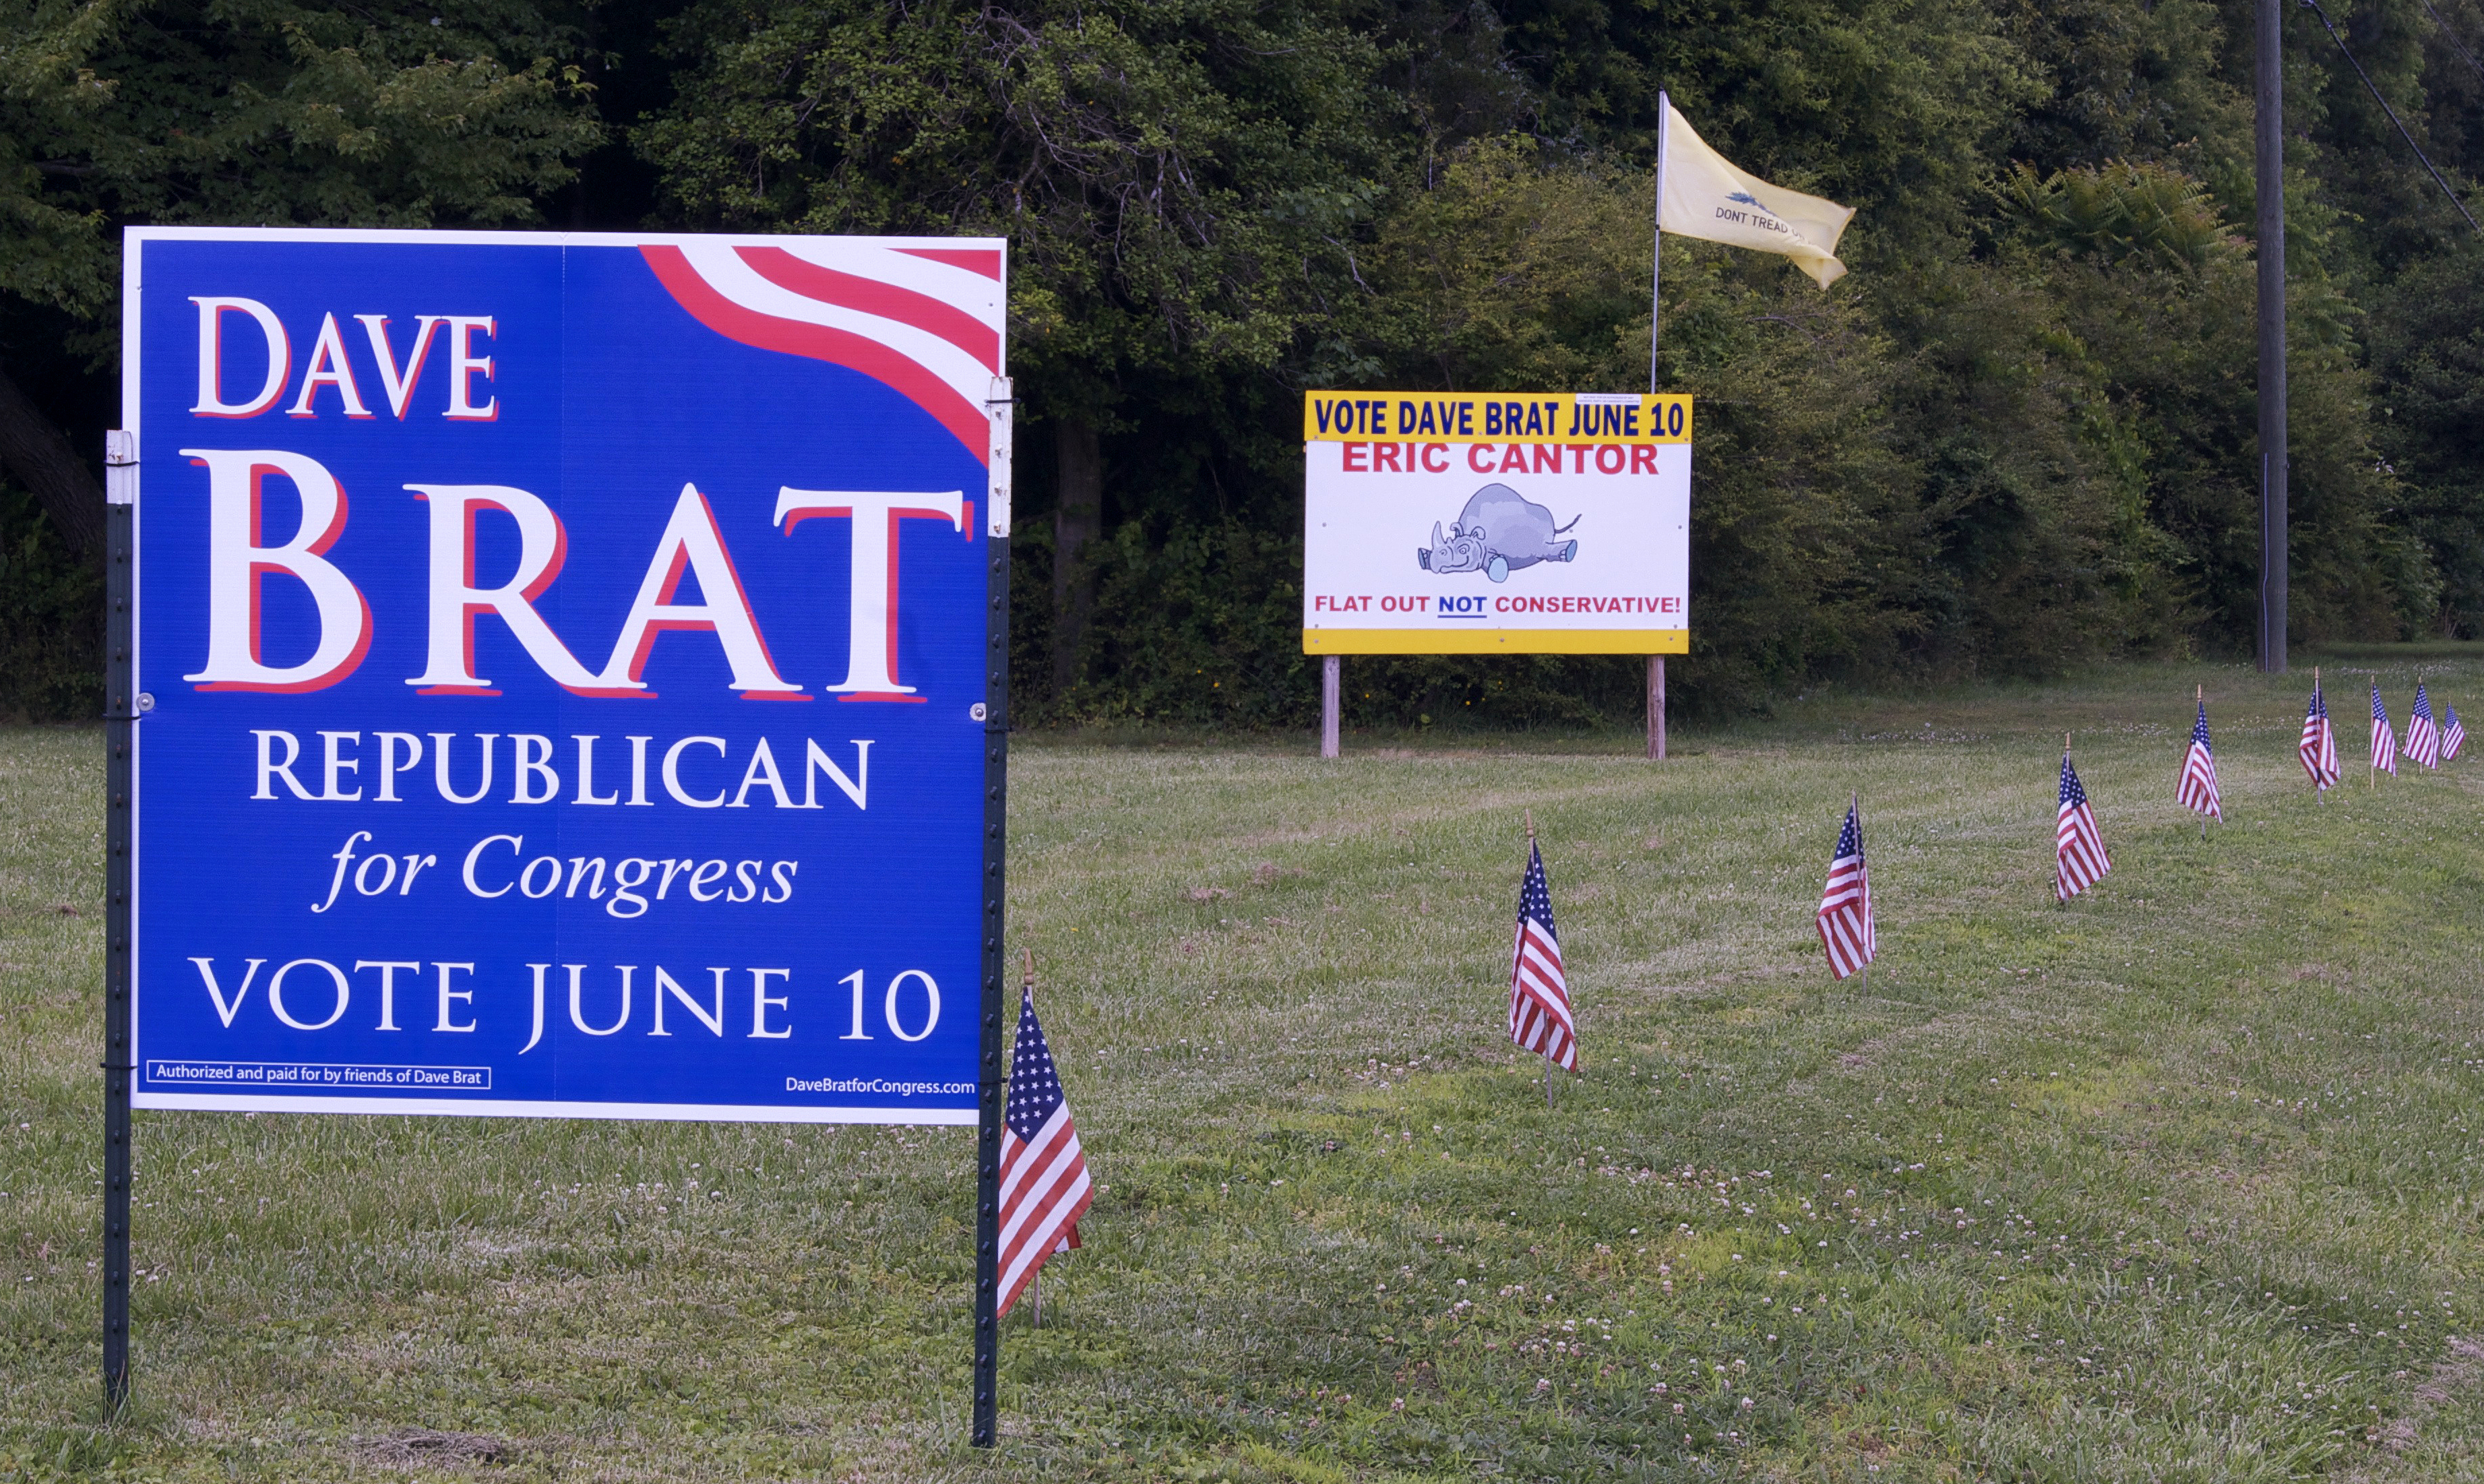 Drivers on Route 301 in Virginia's Hanover County can see competing signs for the Republican primary in Virginia's 7th Congressional District. Photo by Rachel Wellford